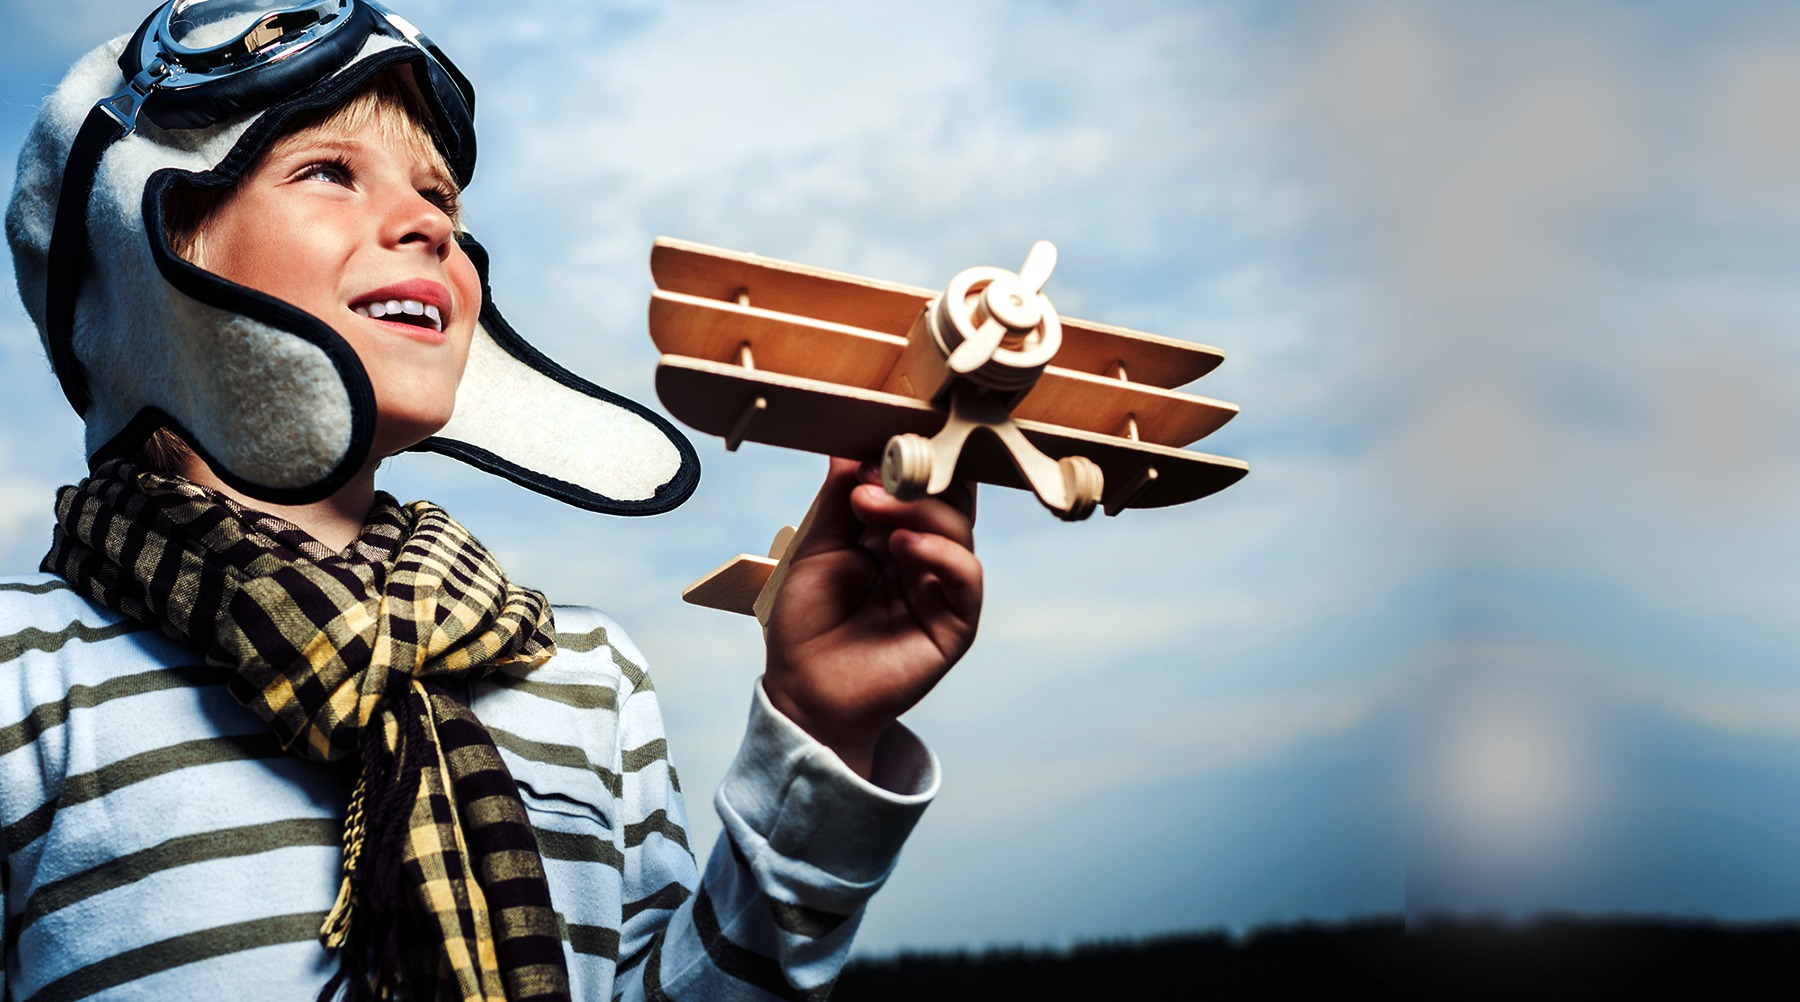 Weathered image of a young boy in a pilot's hat holding a model airplane